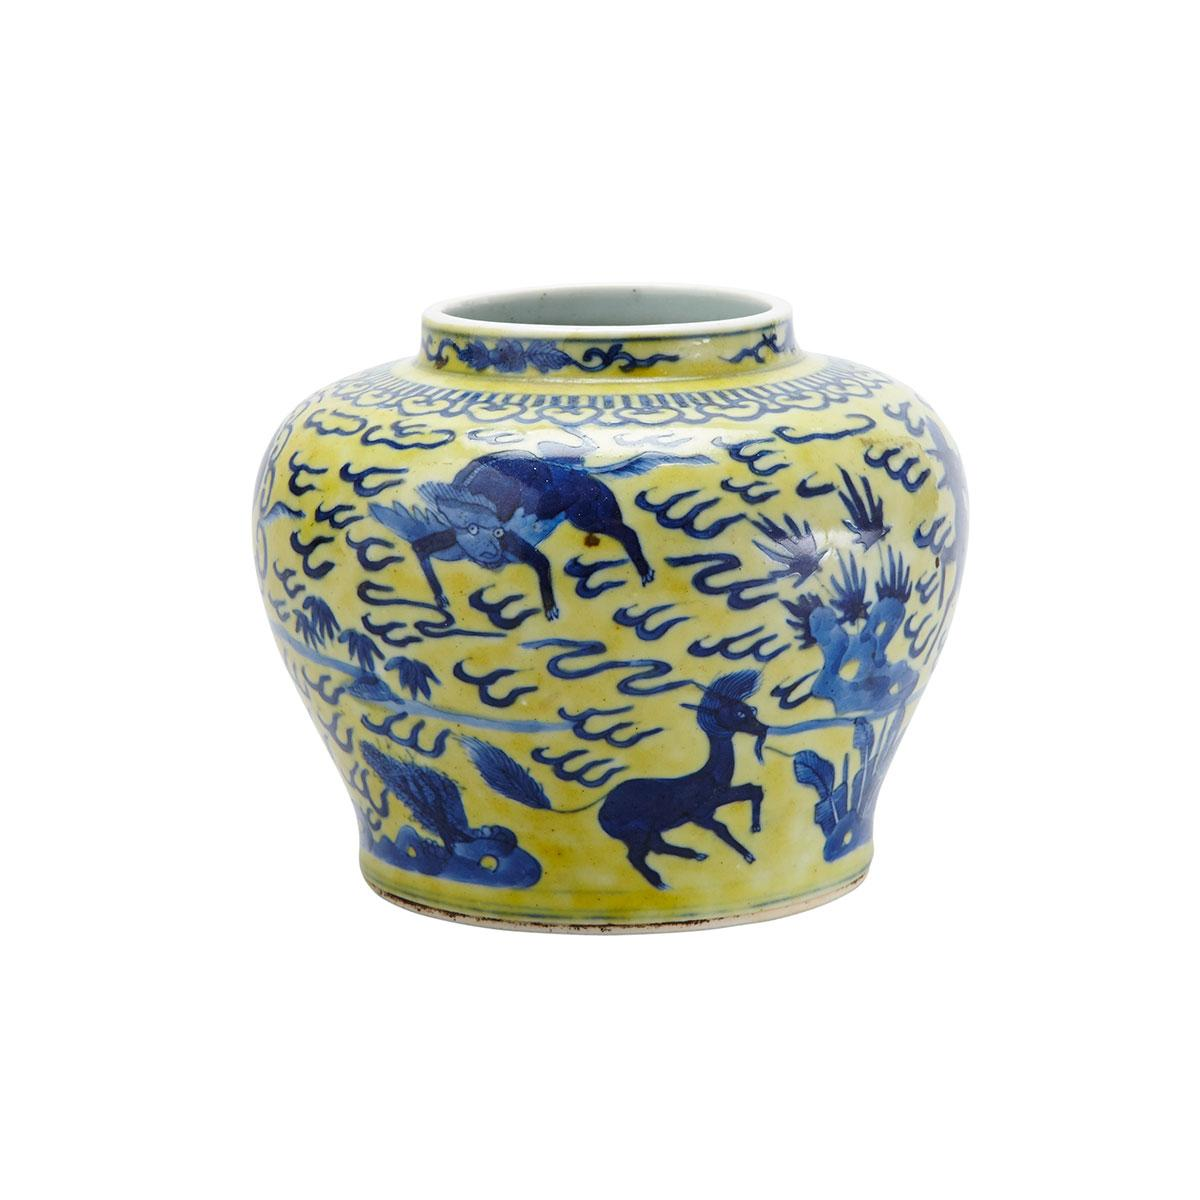 Blue and Yellow Enamel Jar, 17th/18th Century